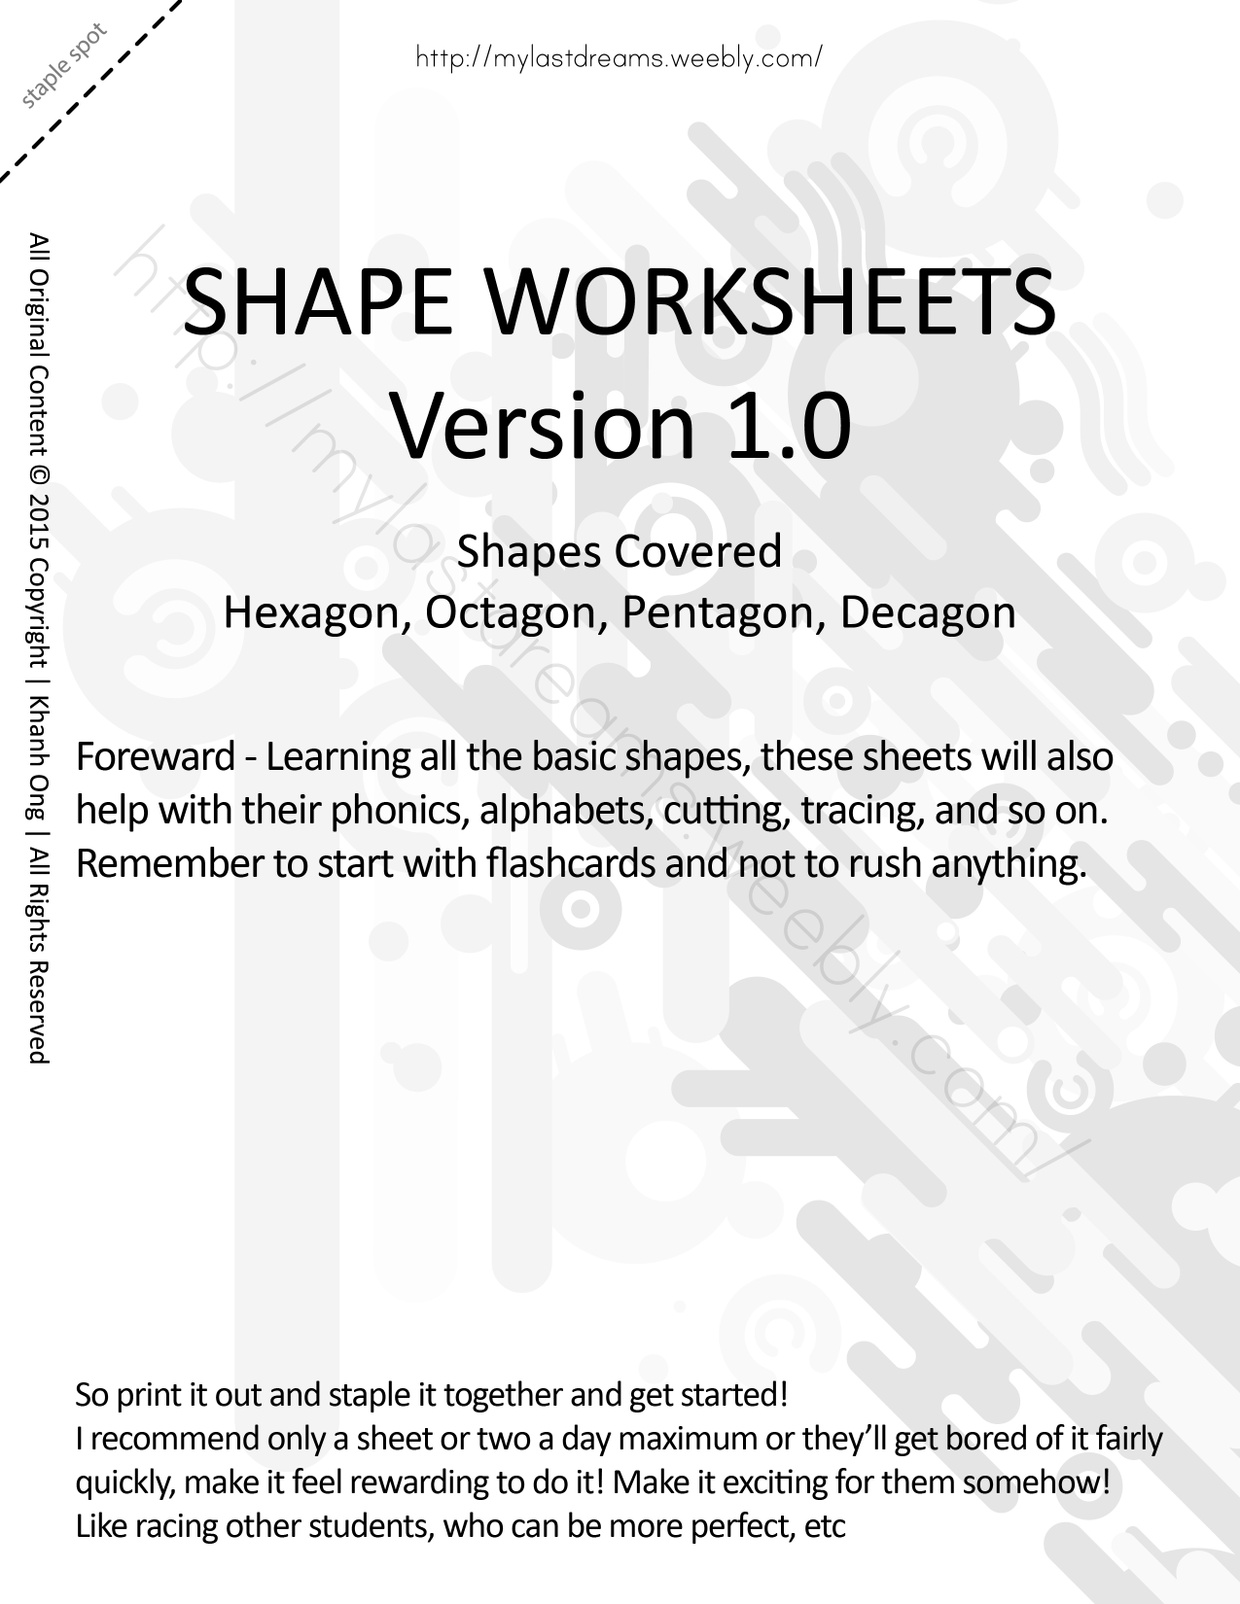 MLD - Basic Shapes Worksheets - Part 3 - Letter Sized